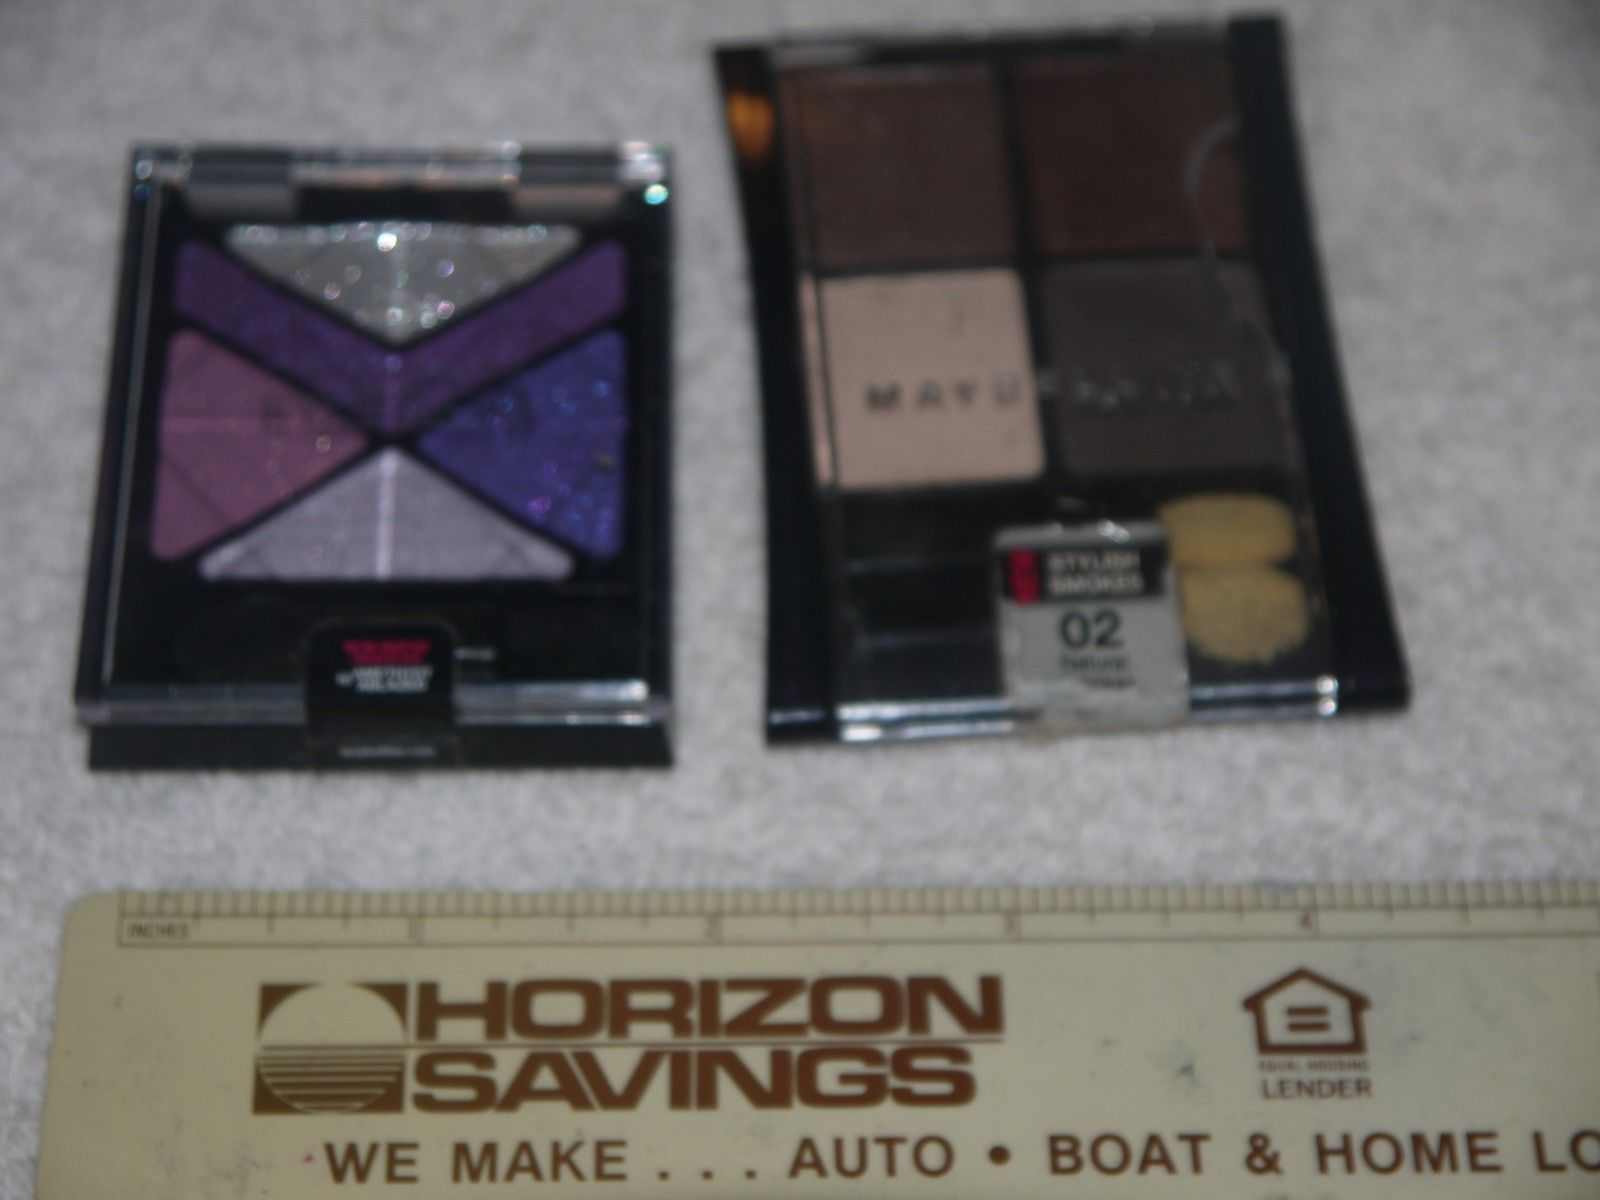 Maybelline Eye Studio Color Explosion Shadow & Stylish Smokes Quad in Natural